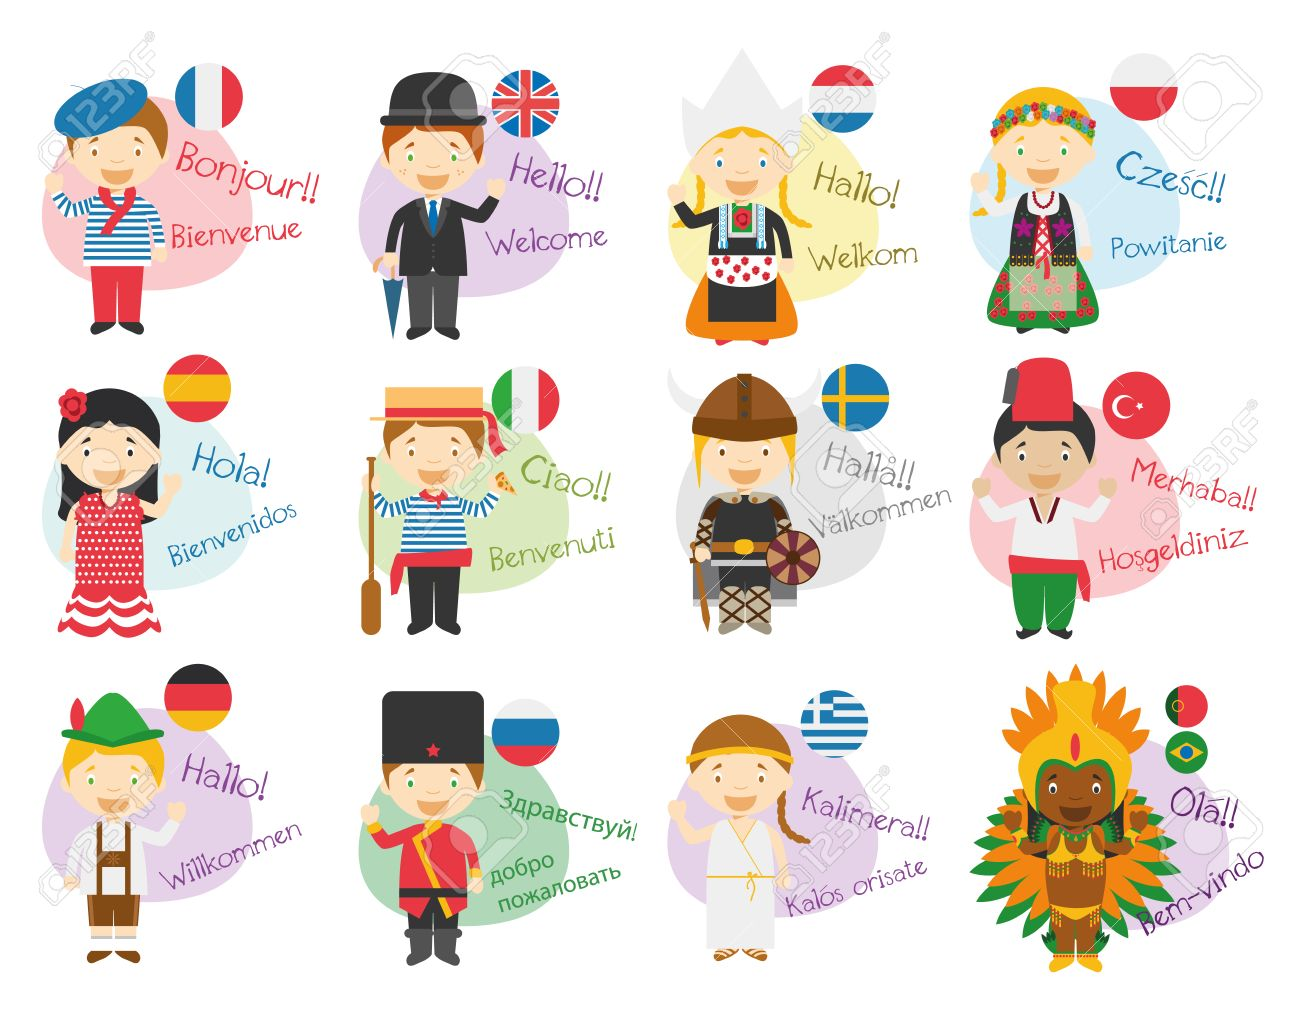 Vector illustration of cartoon characters saying hello and welcome in 12 different languages: Ingl?s, french, spanish, german, italian, russian, dutch, sweden, greek, polish, turkish or portuguese and brazilian. - 63210815